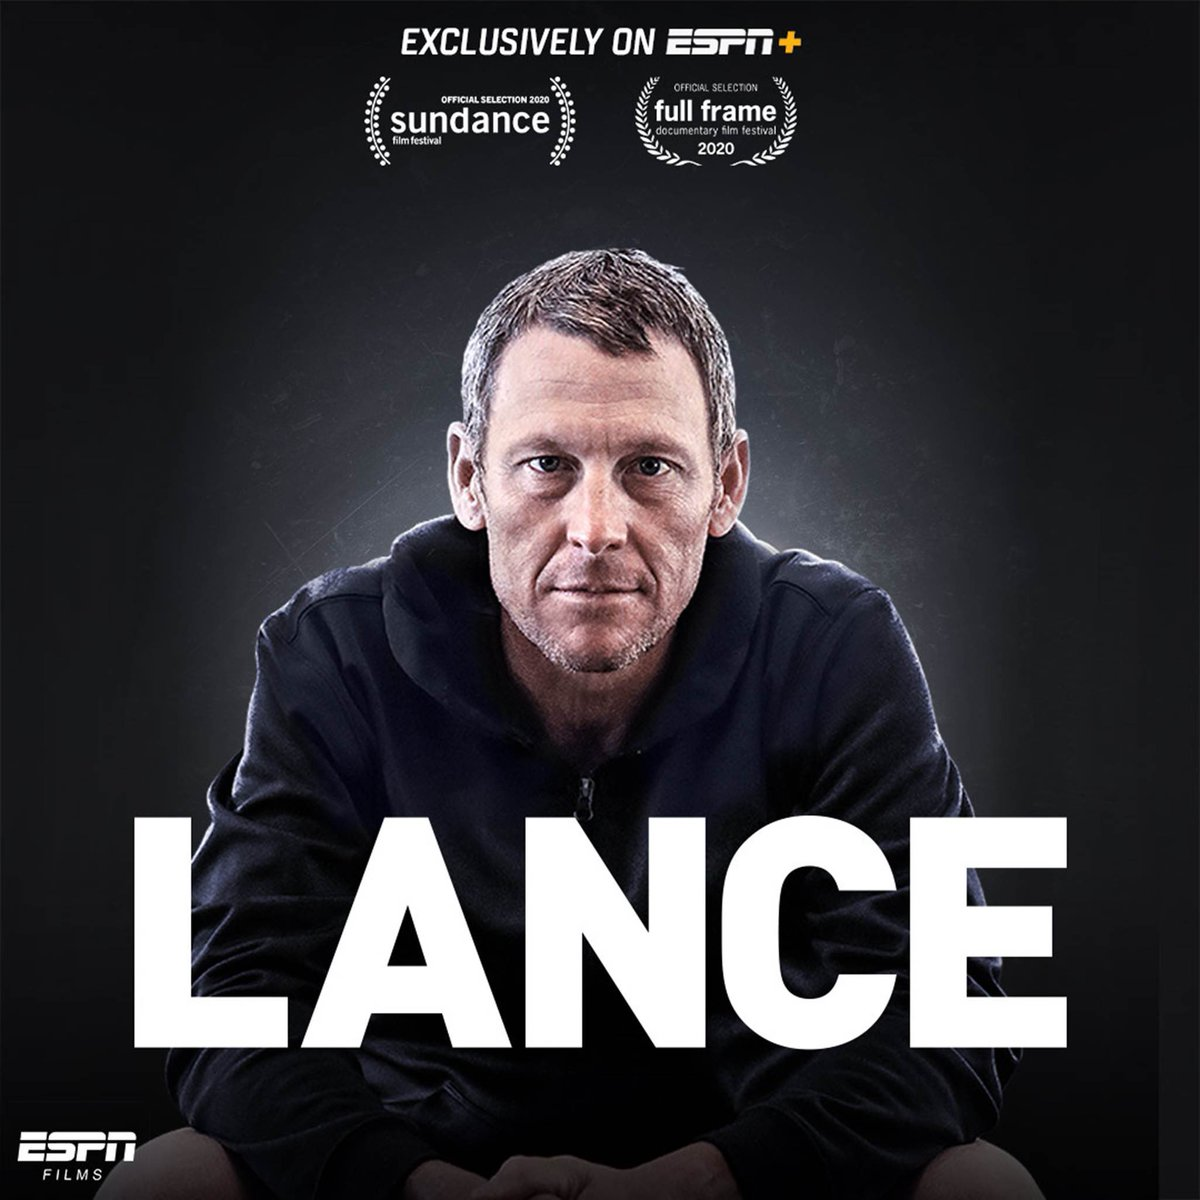 @30for30 #Lance. On @espn  What a compelling film !! https://t.co/URxObGLbIx